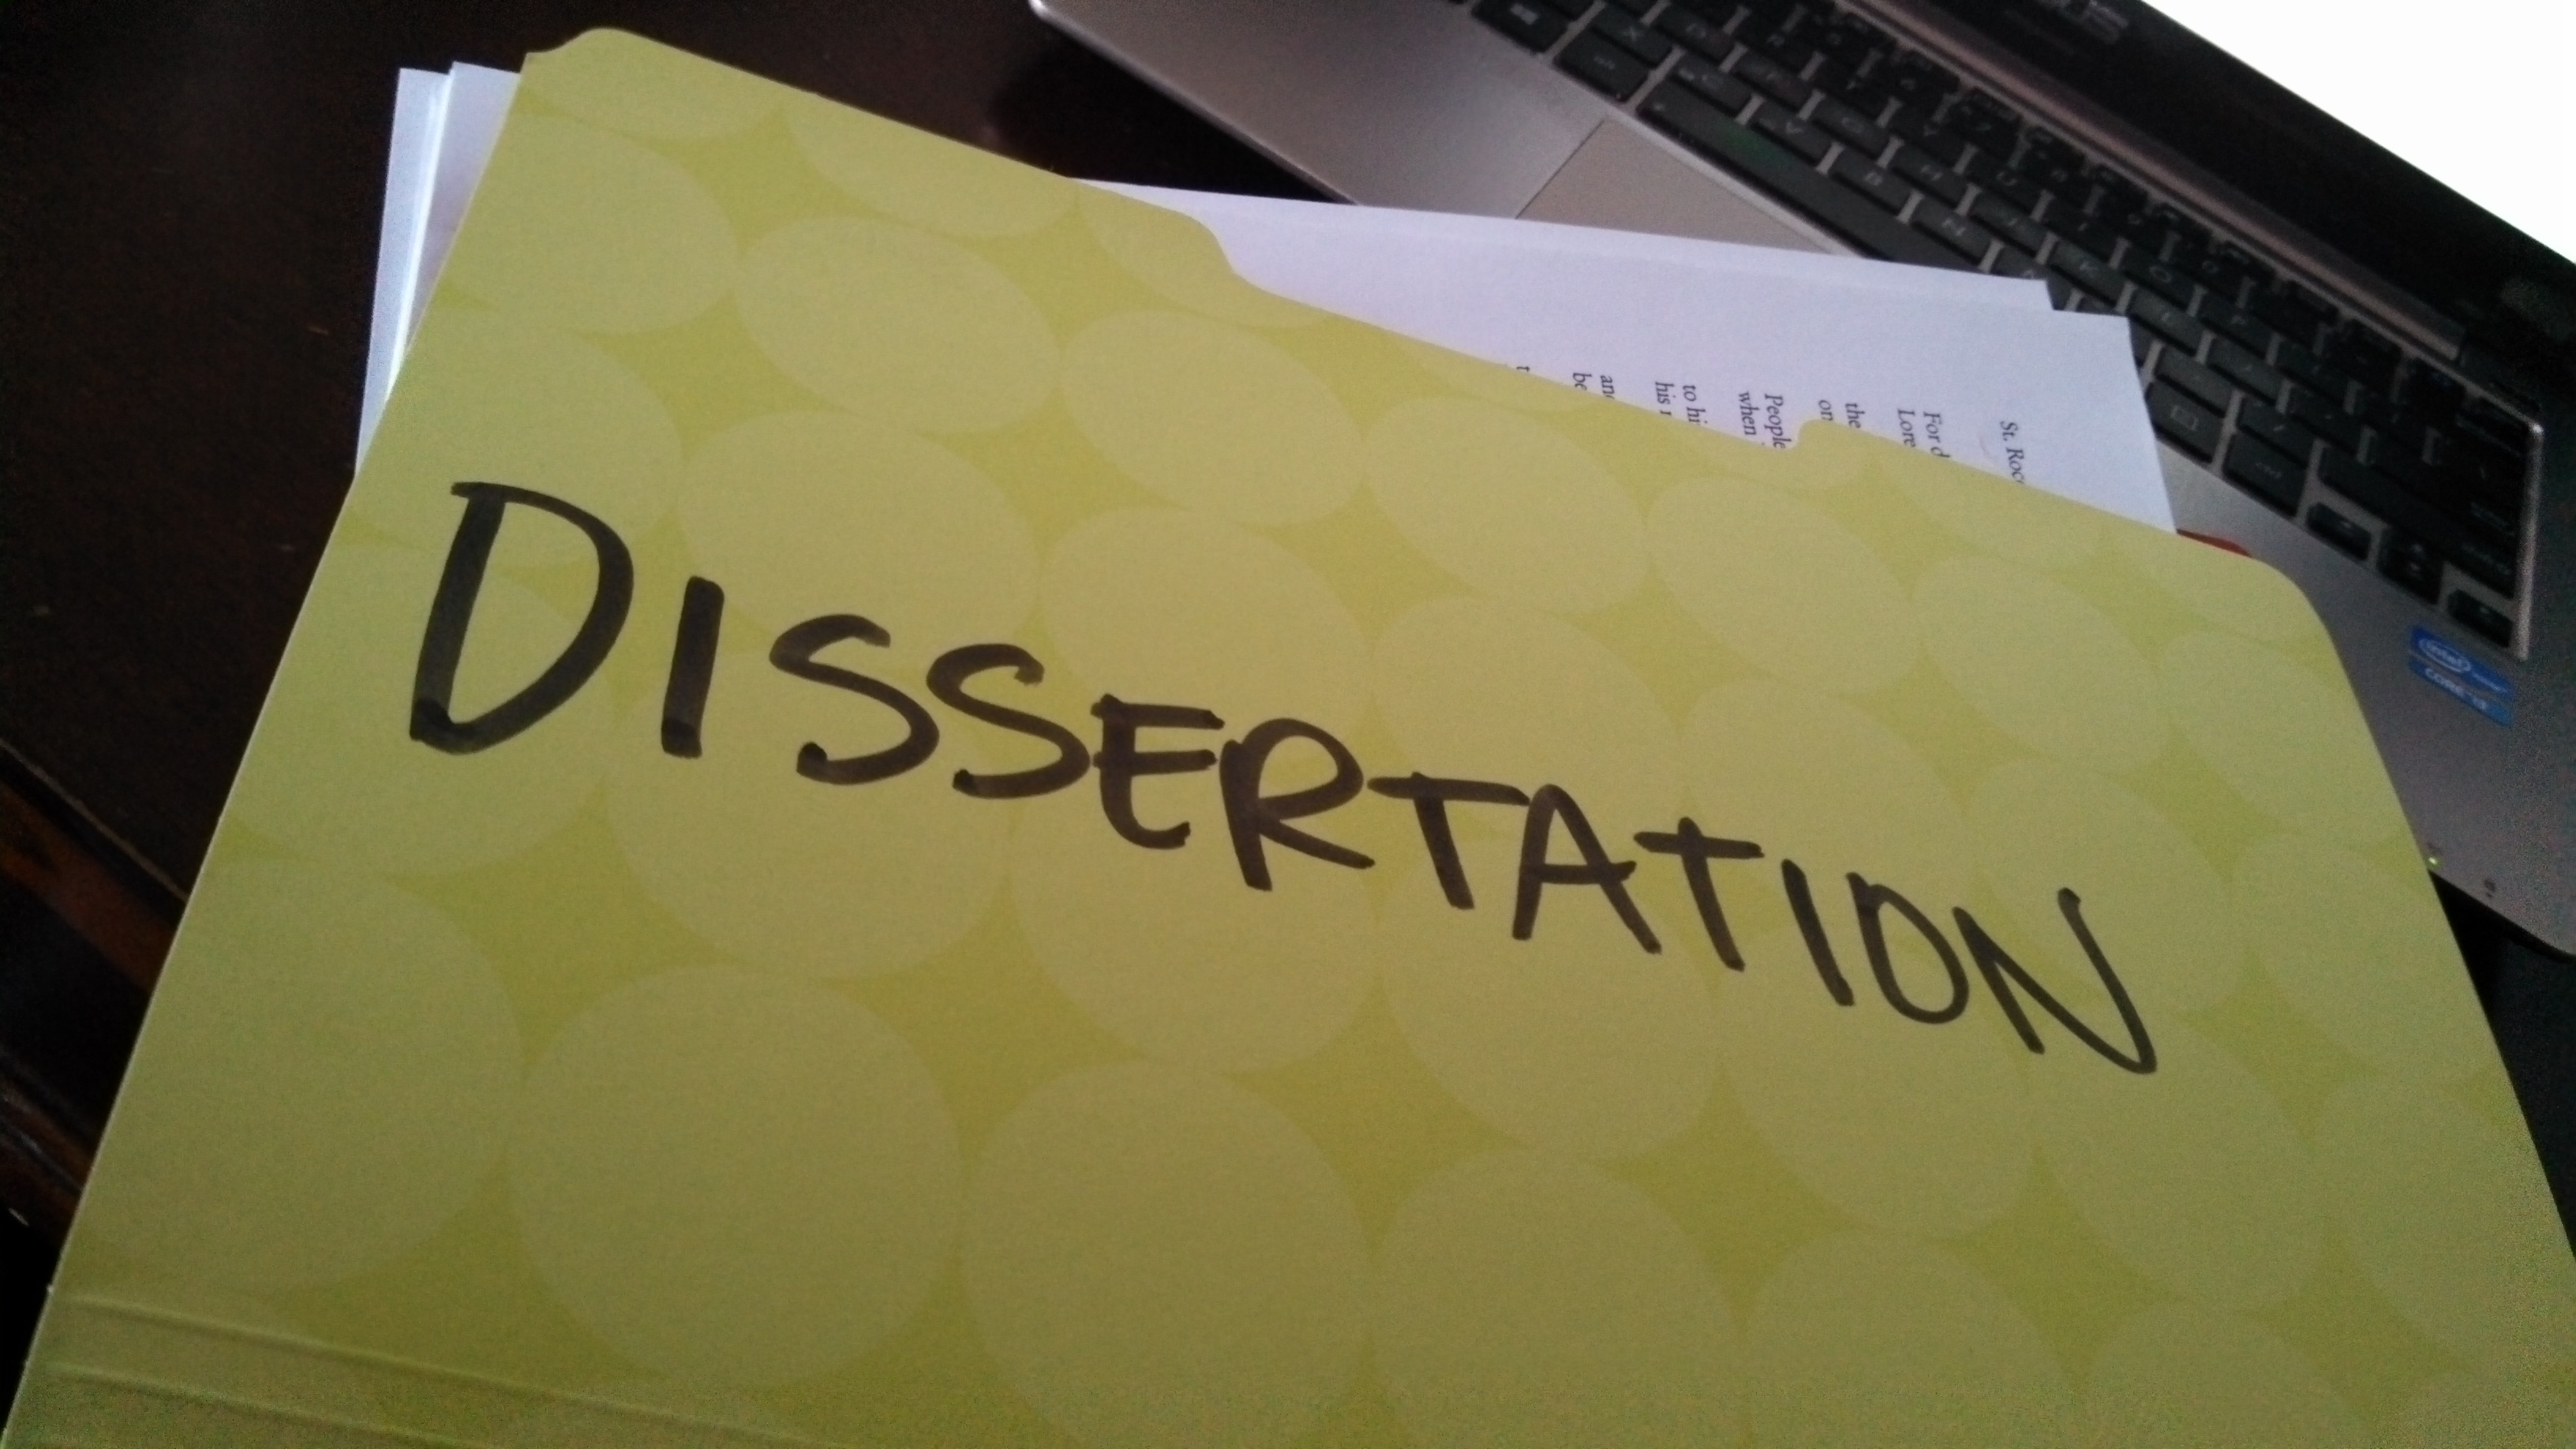 Writing dissertation service